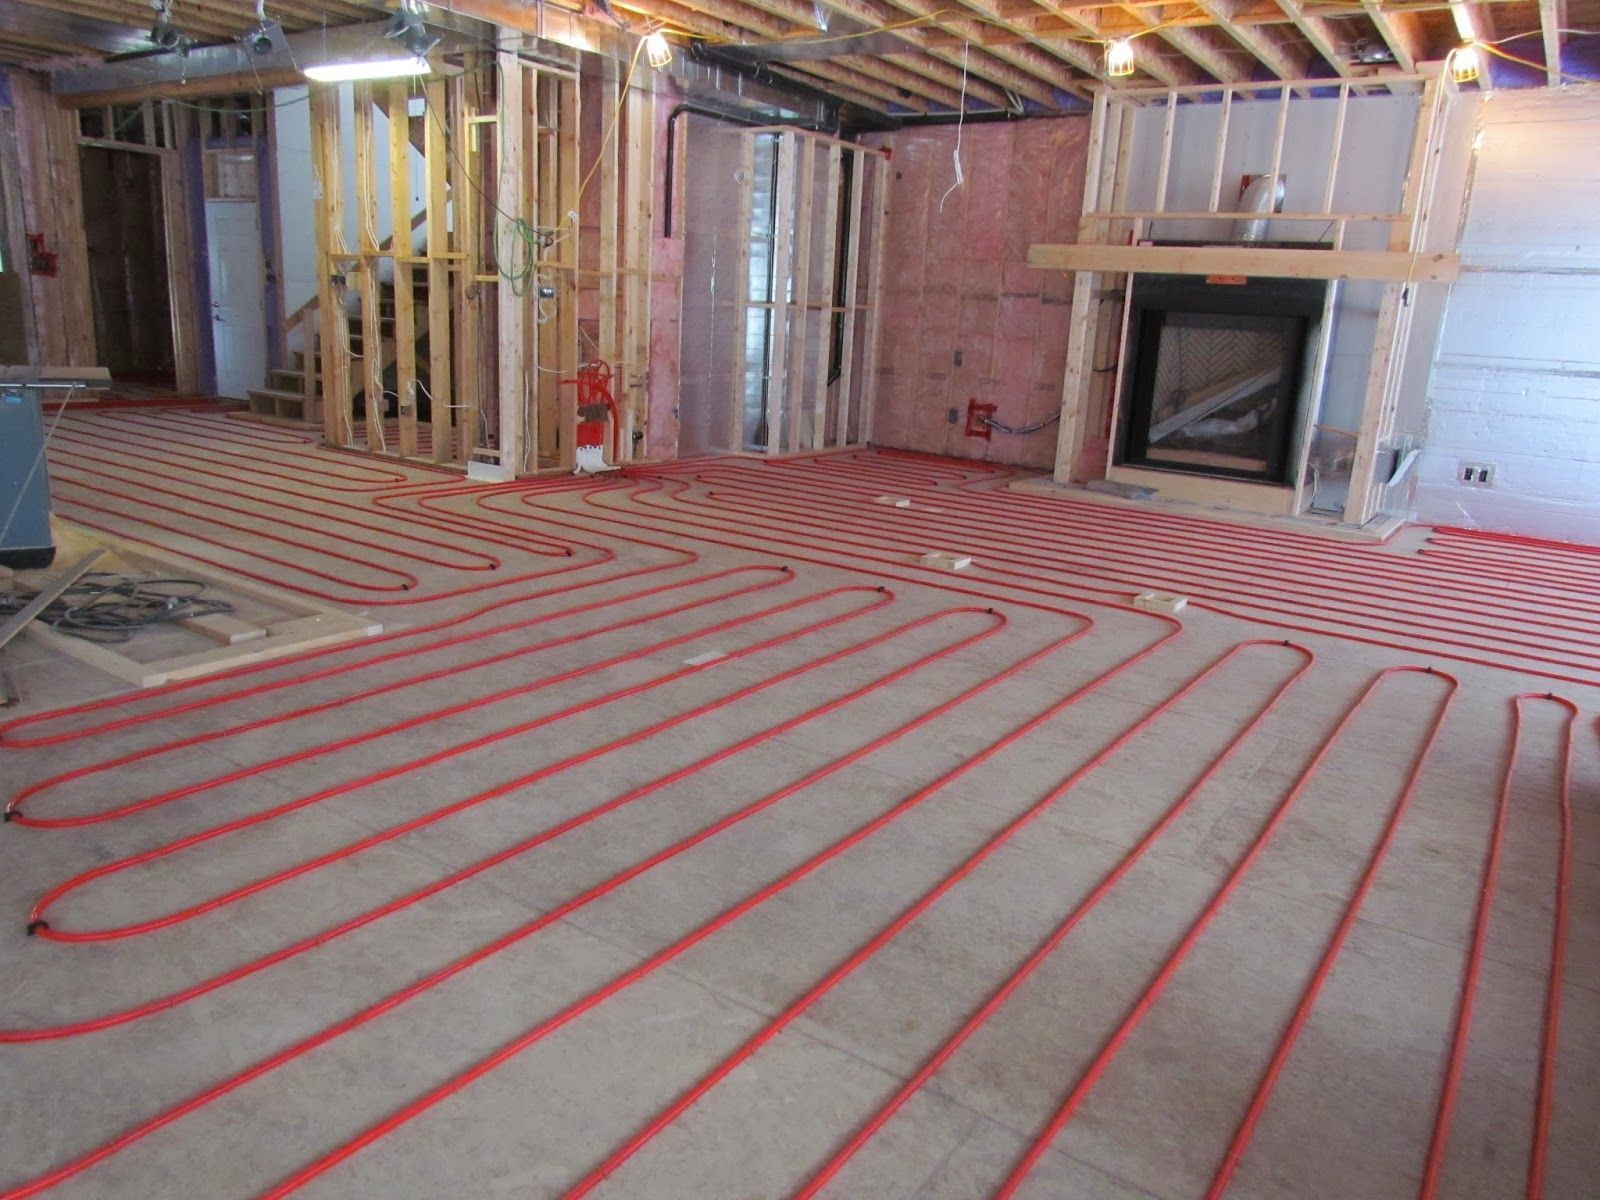 Basement Floor Heating Under Carpet Floor Heating Systems Radiant Floor Heating Radiant Floor